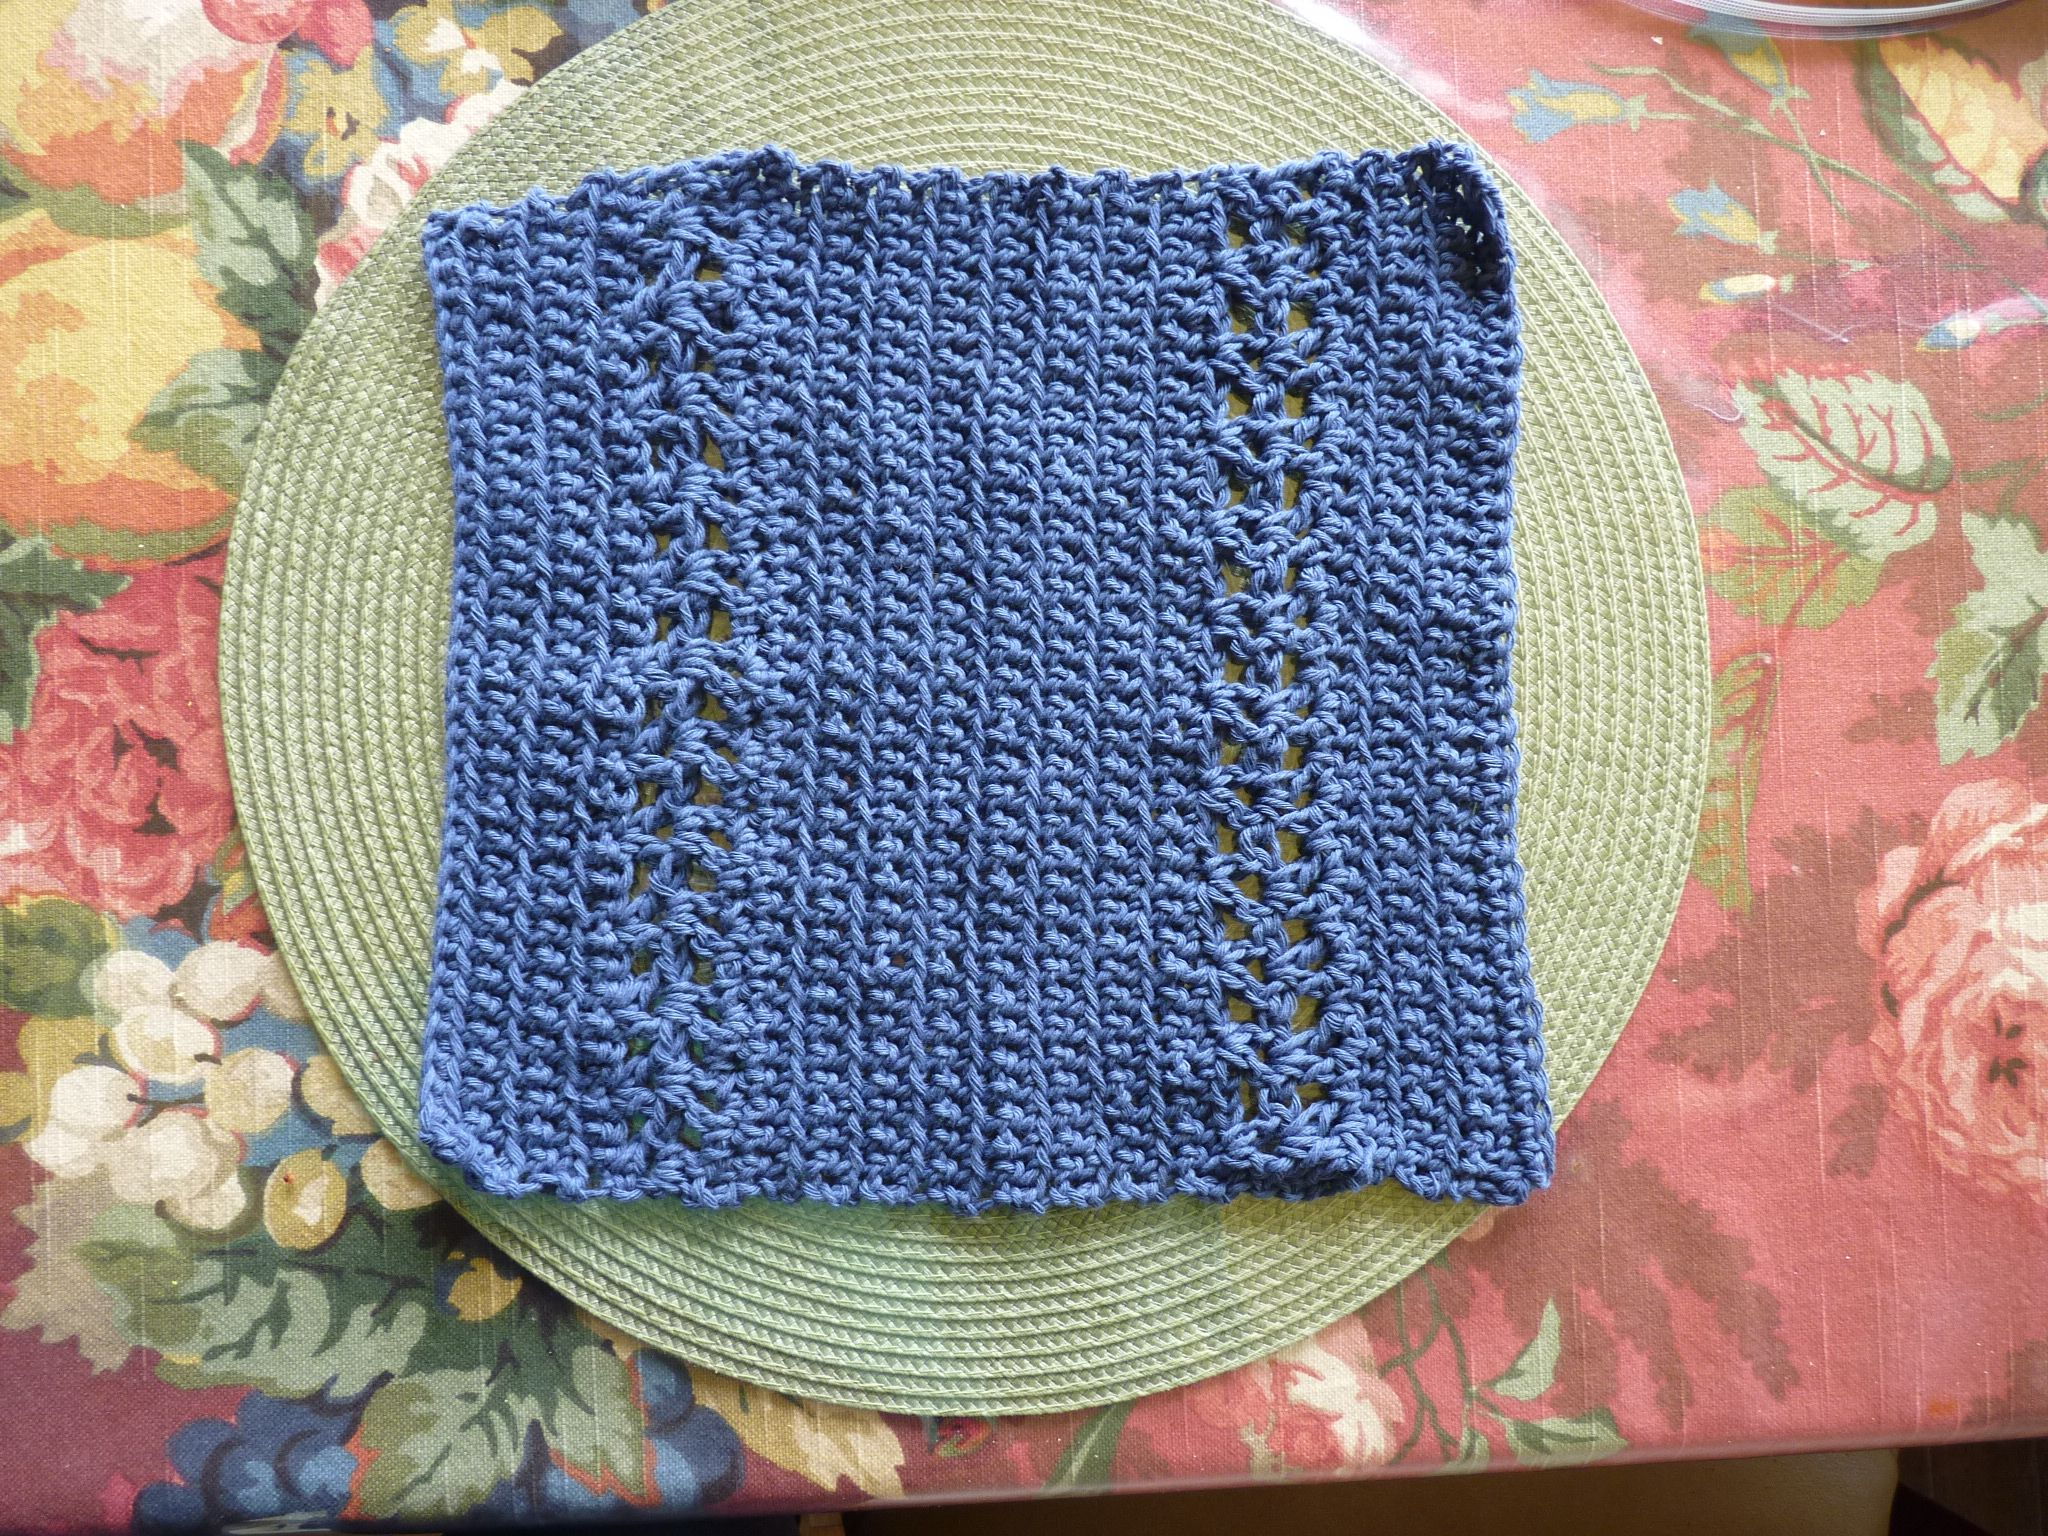 My version of the fancy dishcloth minus the trim.  Used Eco-fil recycled cotton yarn. J hook.